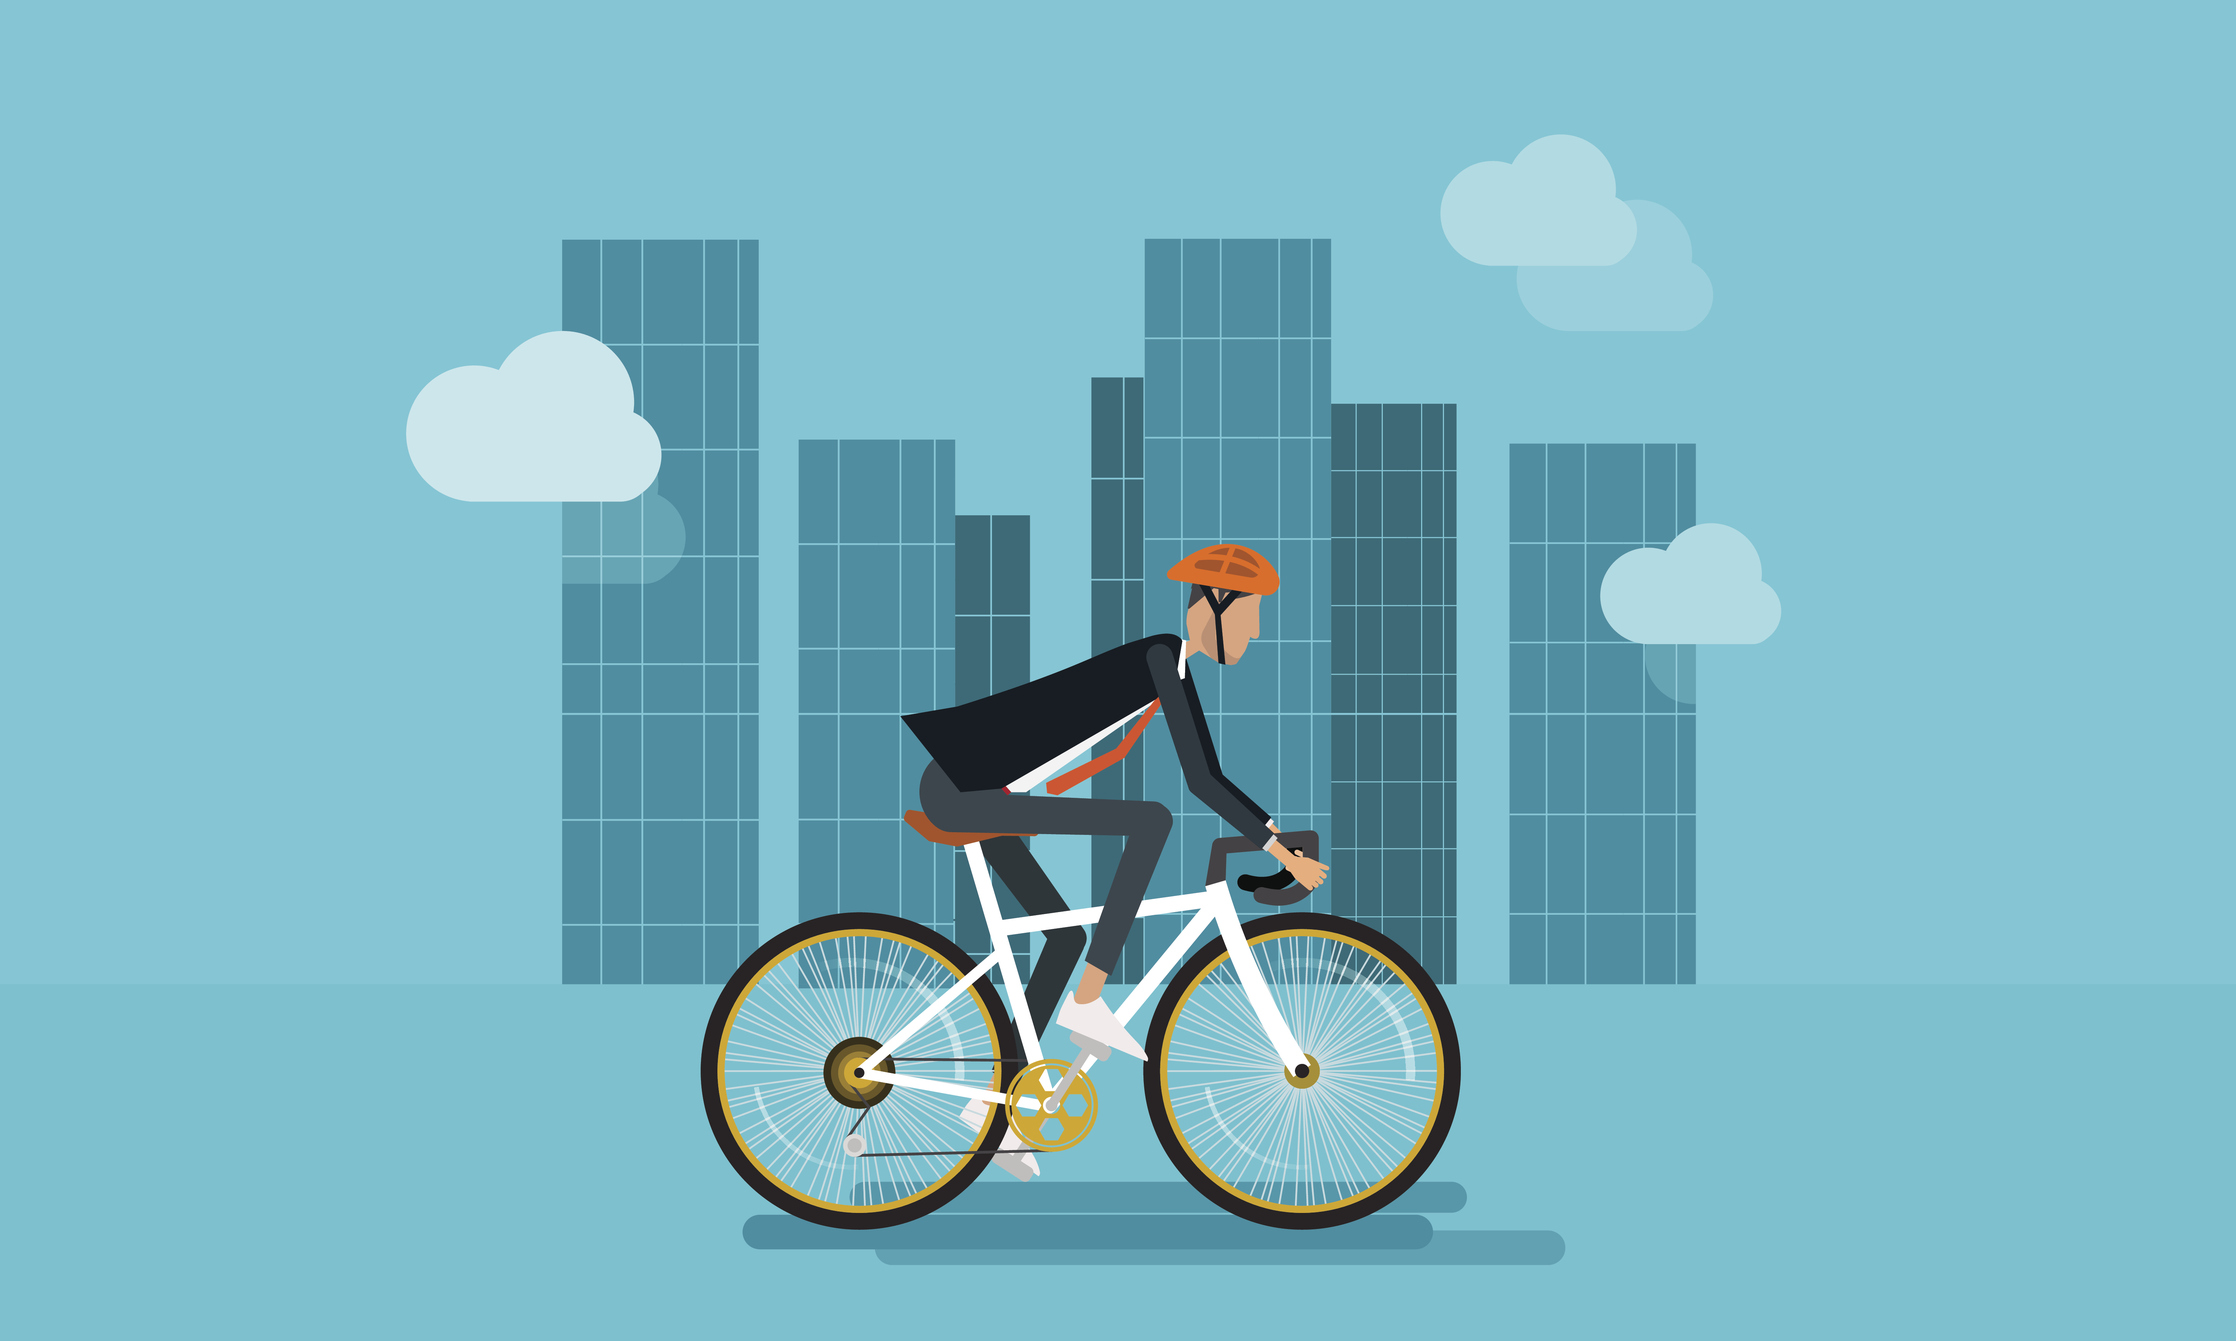 biking illustration